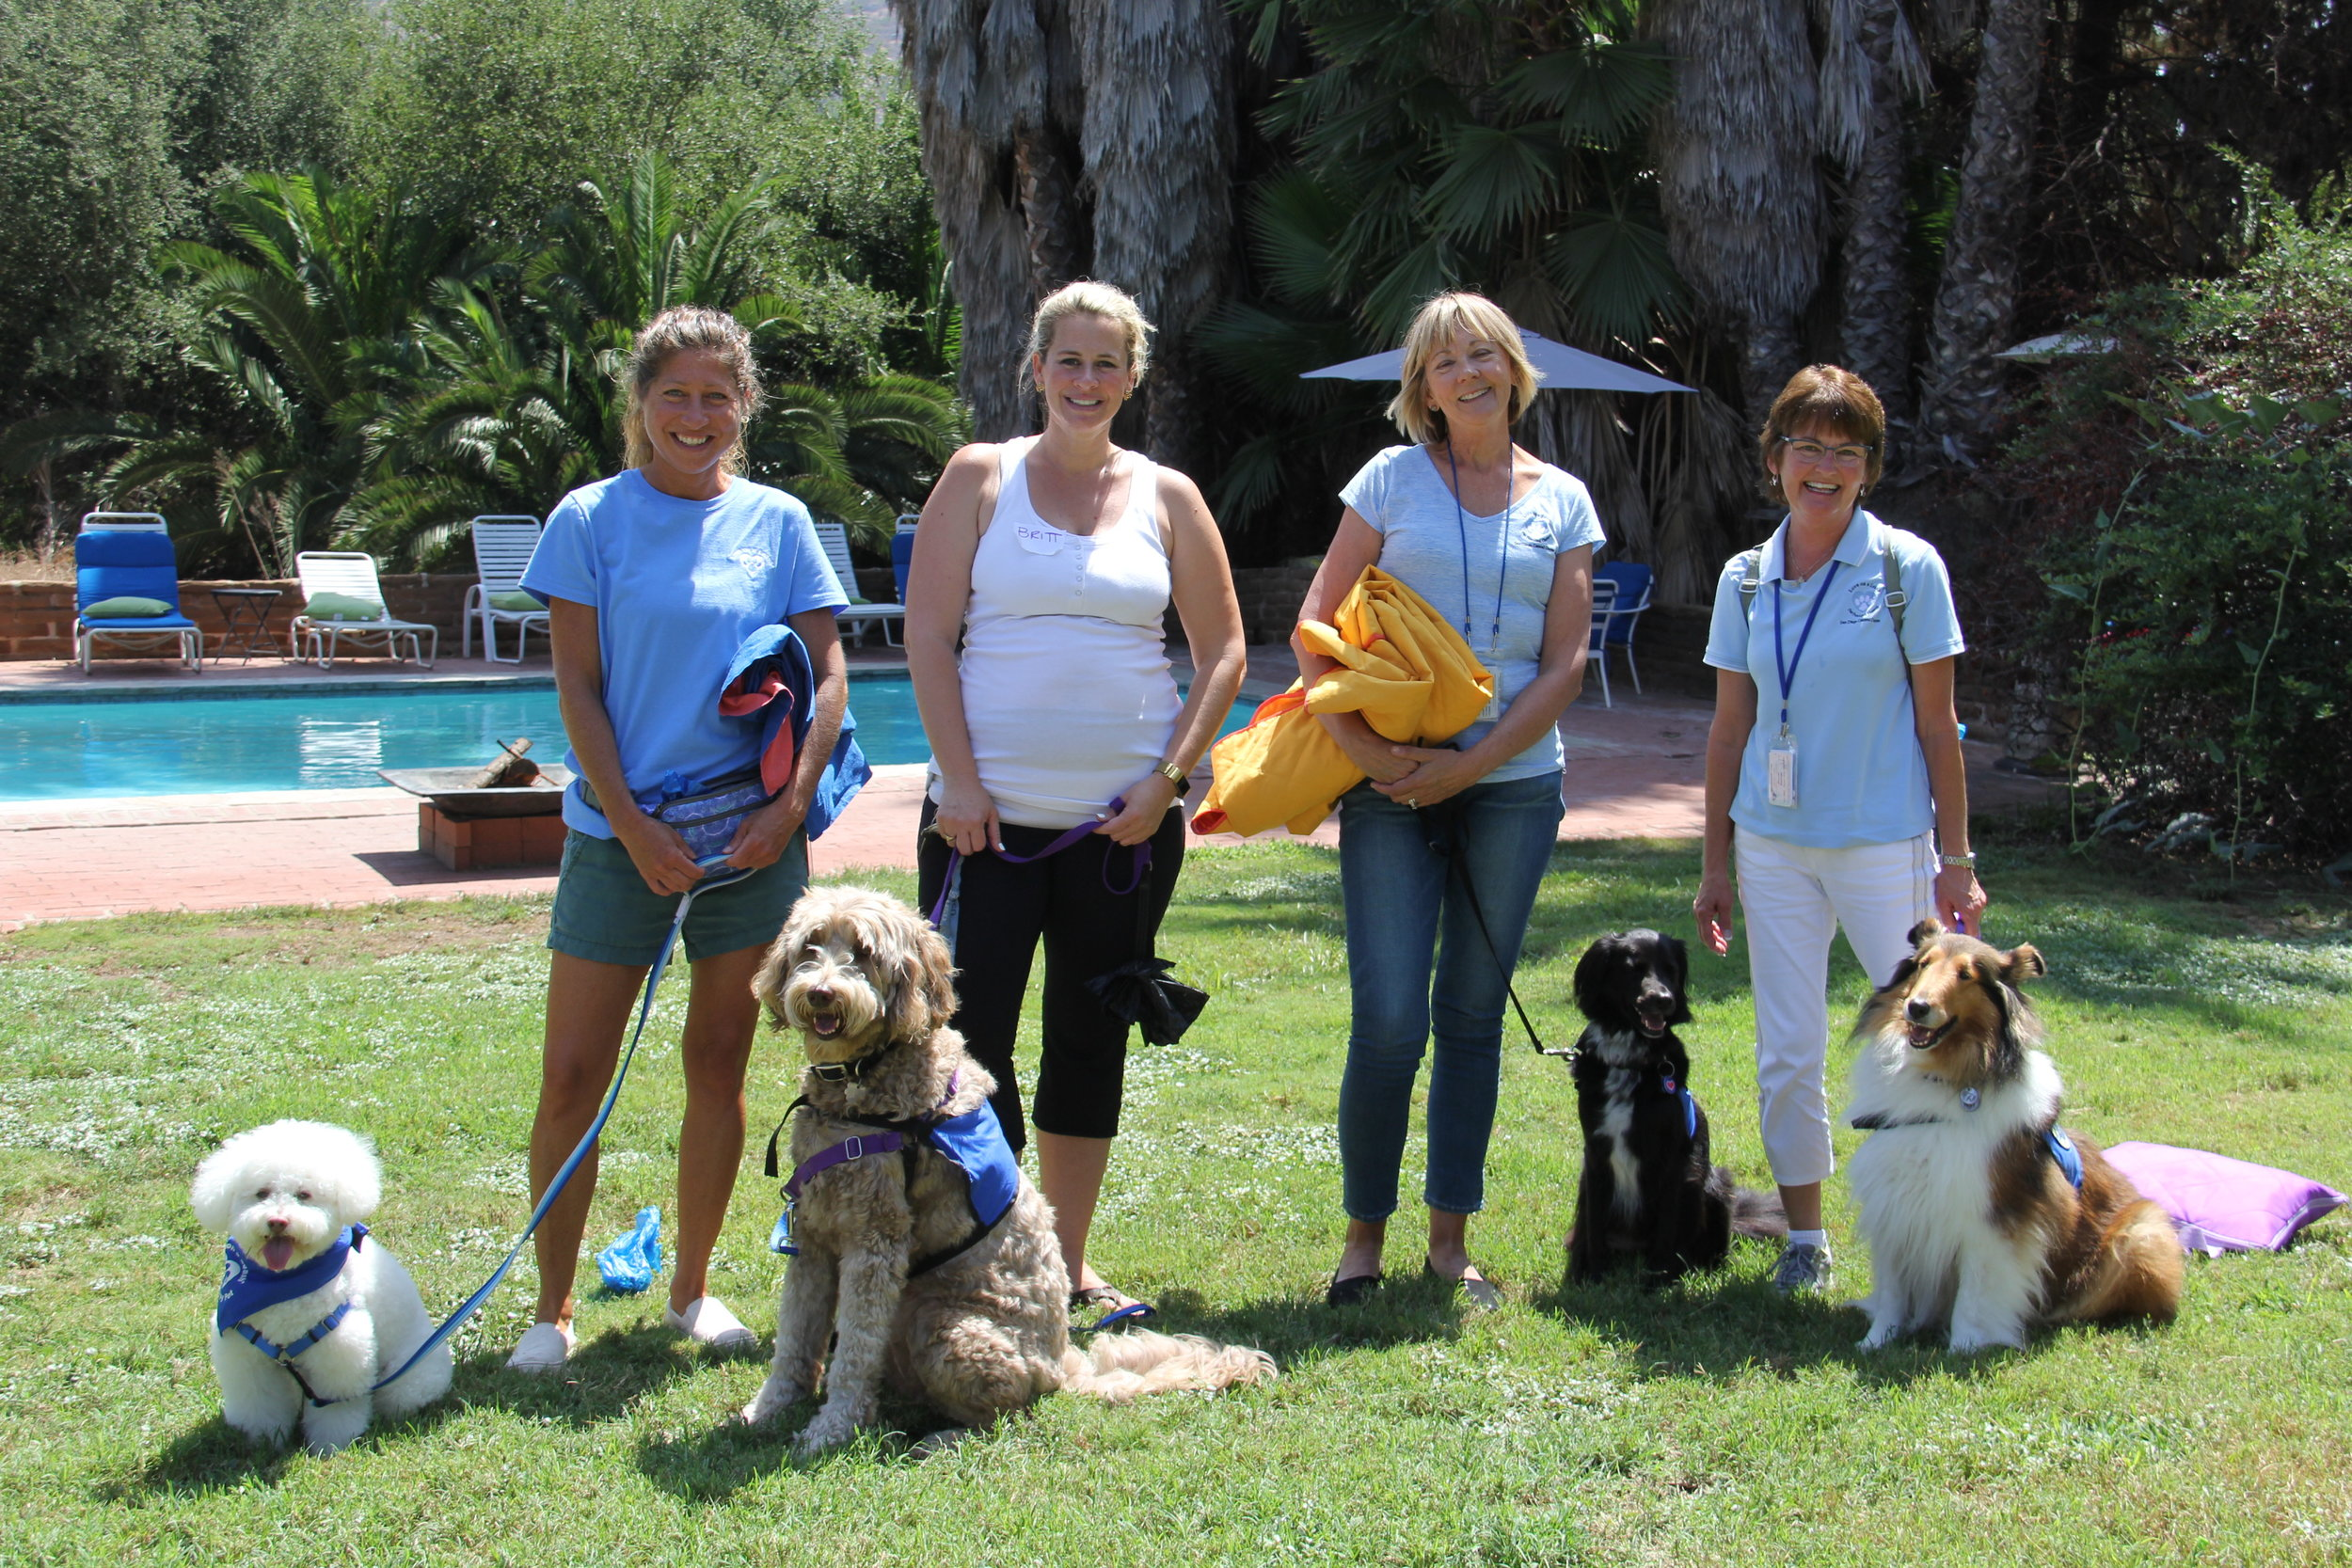 Eight months pregnant Sunlight Retreats Founder Brittany Catton Kirk with Love on a Leash Central San Diego Chapter volunteers at the August 2018 Sunlight Retreat for Survivors